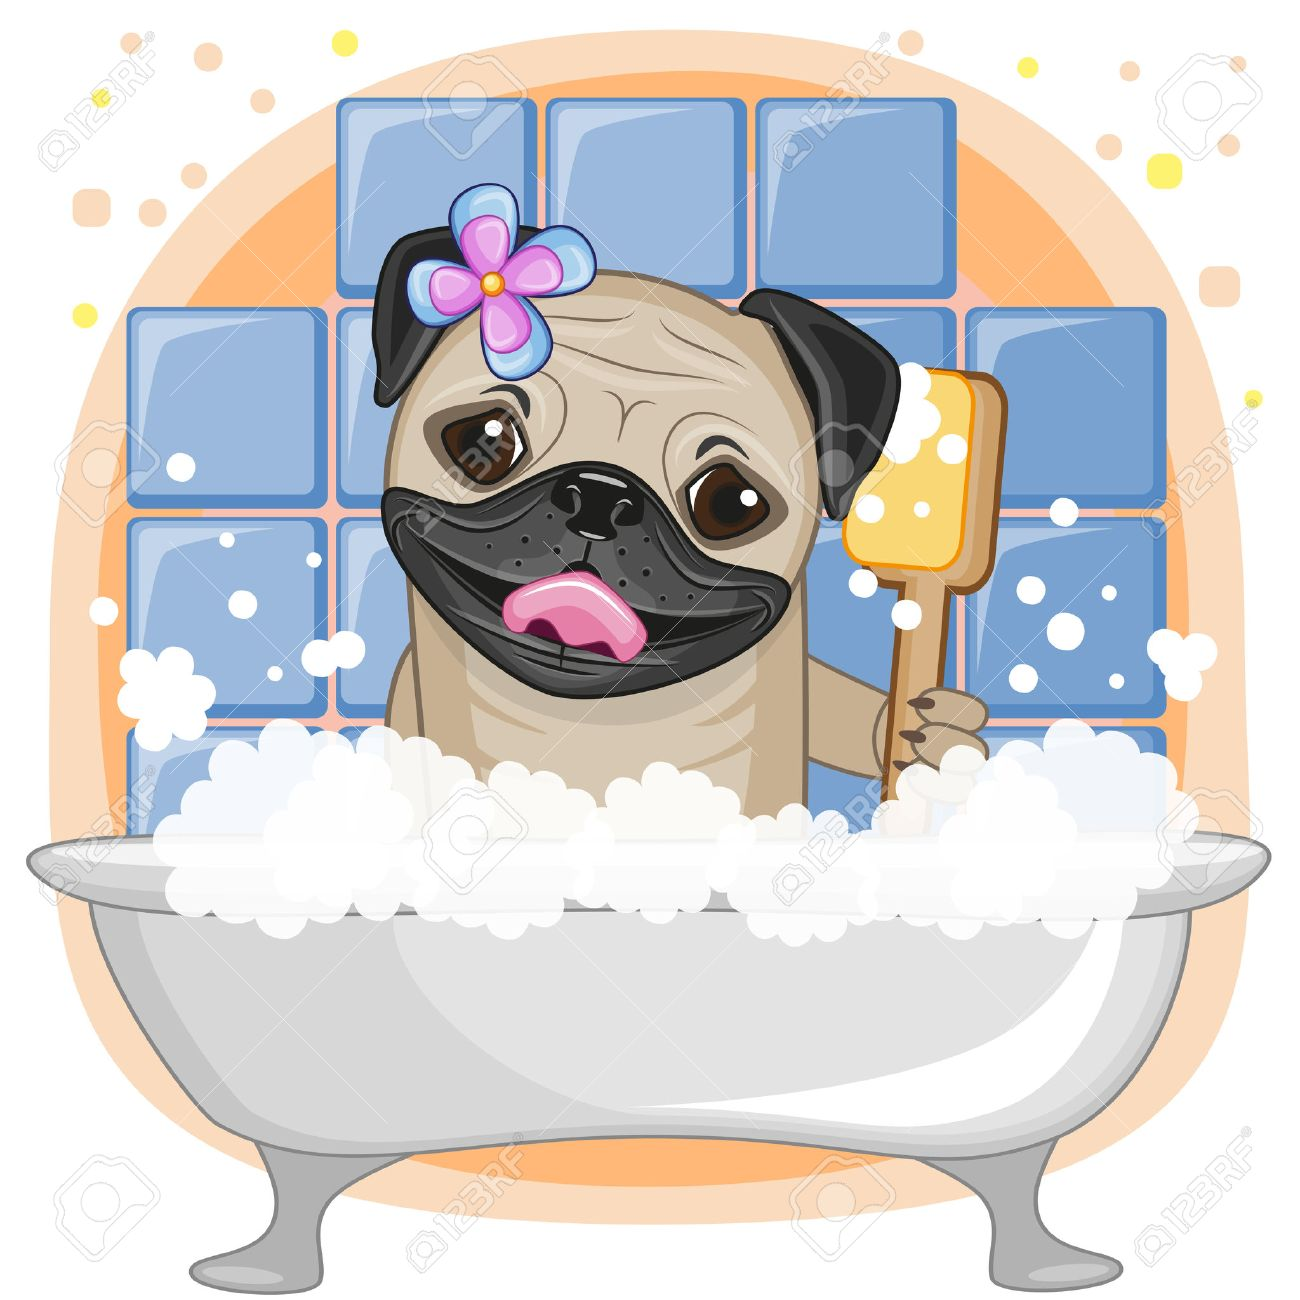 pug cartoon stock photos royalty free pug cartoon images and pictures